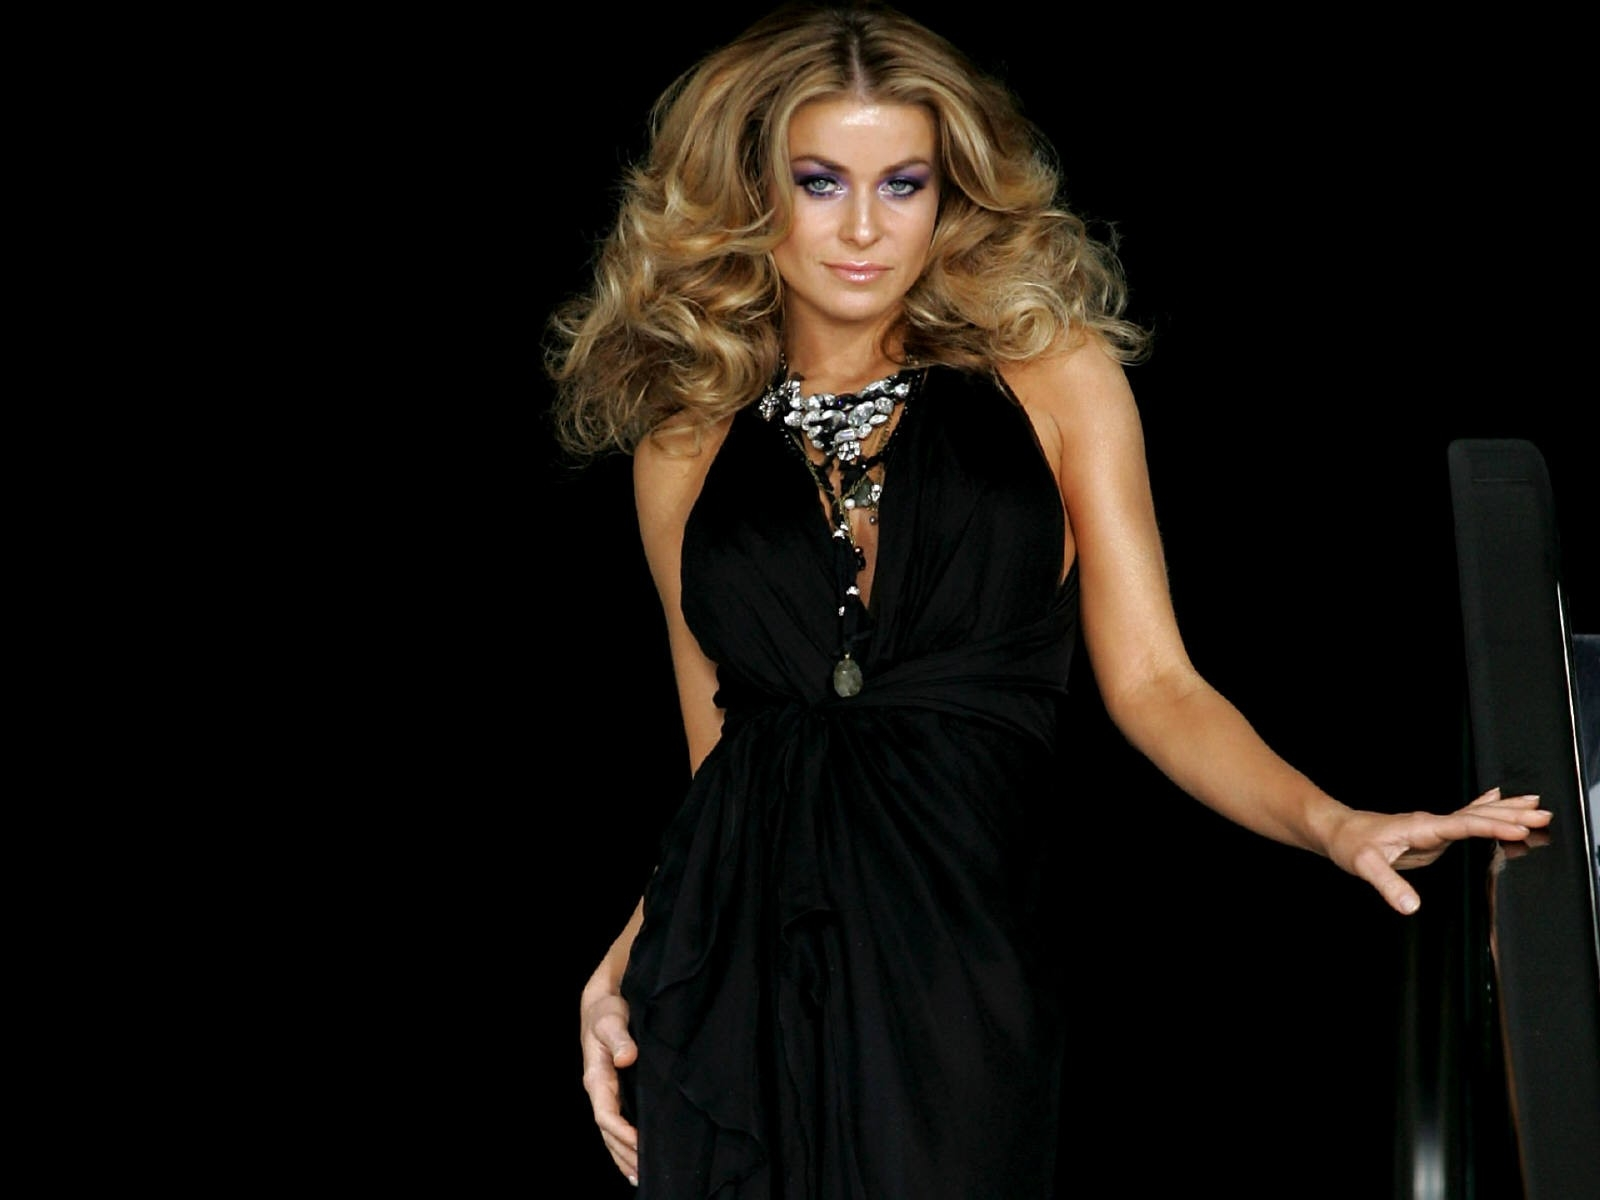 Wallpaper di Carmen Electra in total black